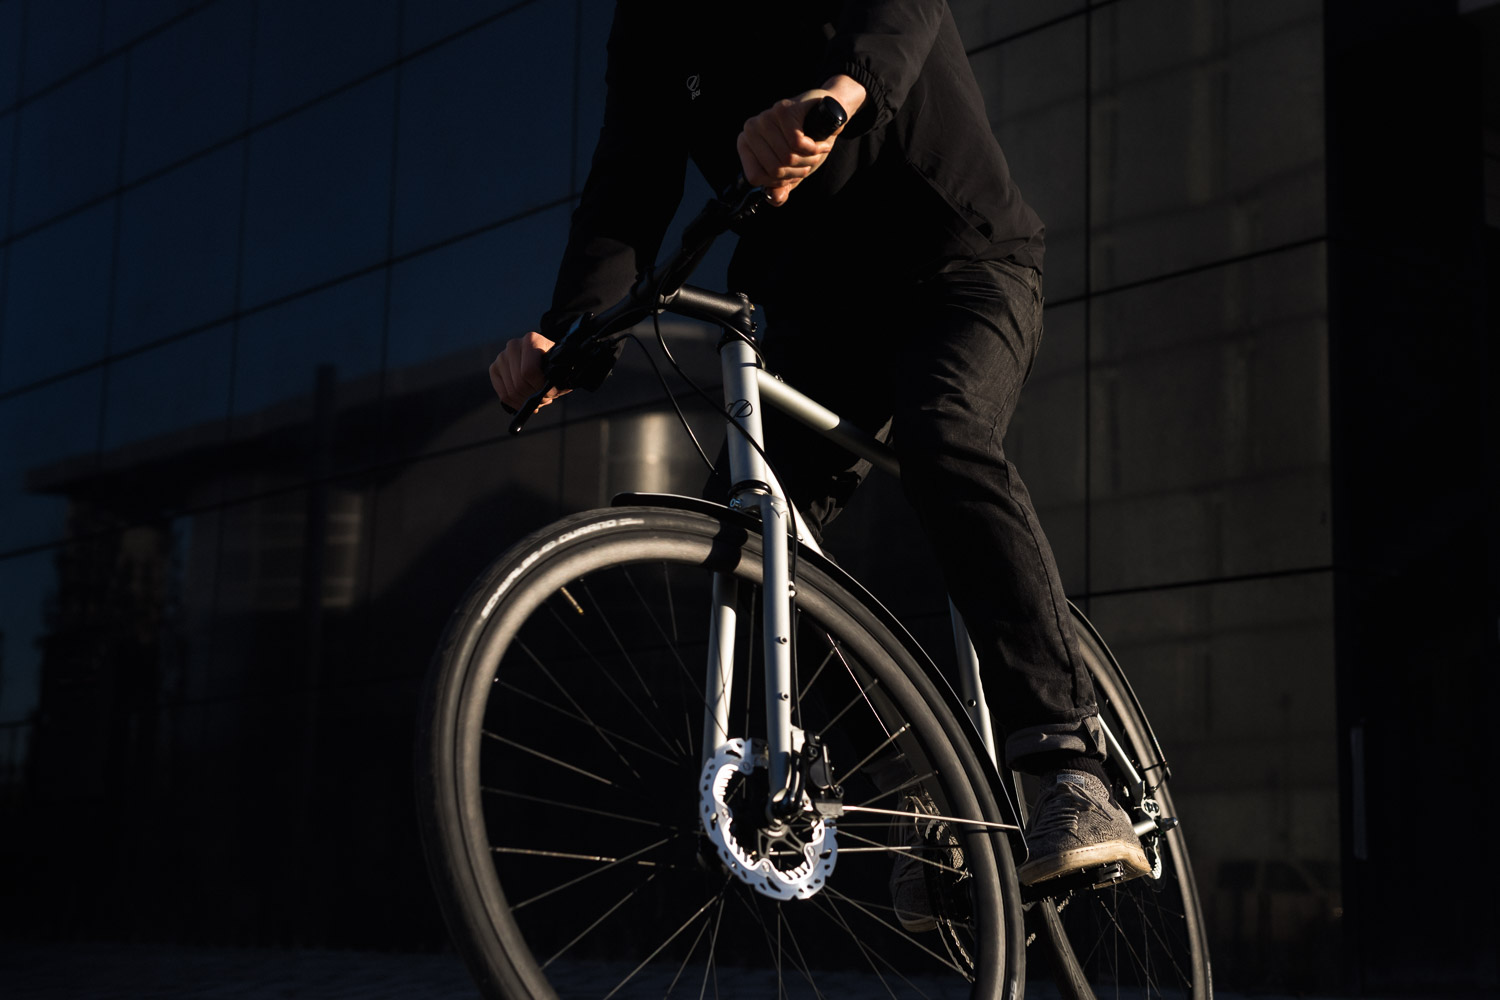 Bicycle ridden by a man wearing a full black outfit.It is a silver grey 8bar Mitte Steel with disc brakes, riser bar and fenders.